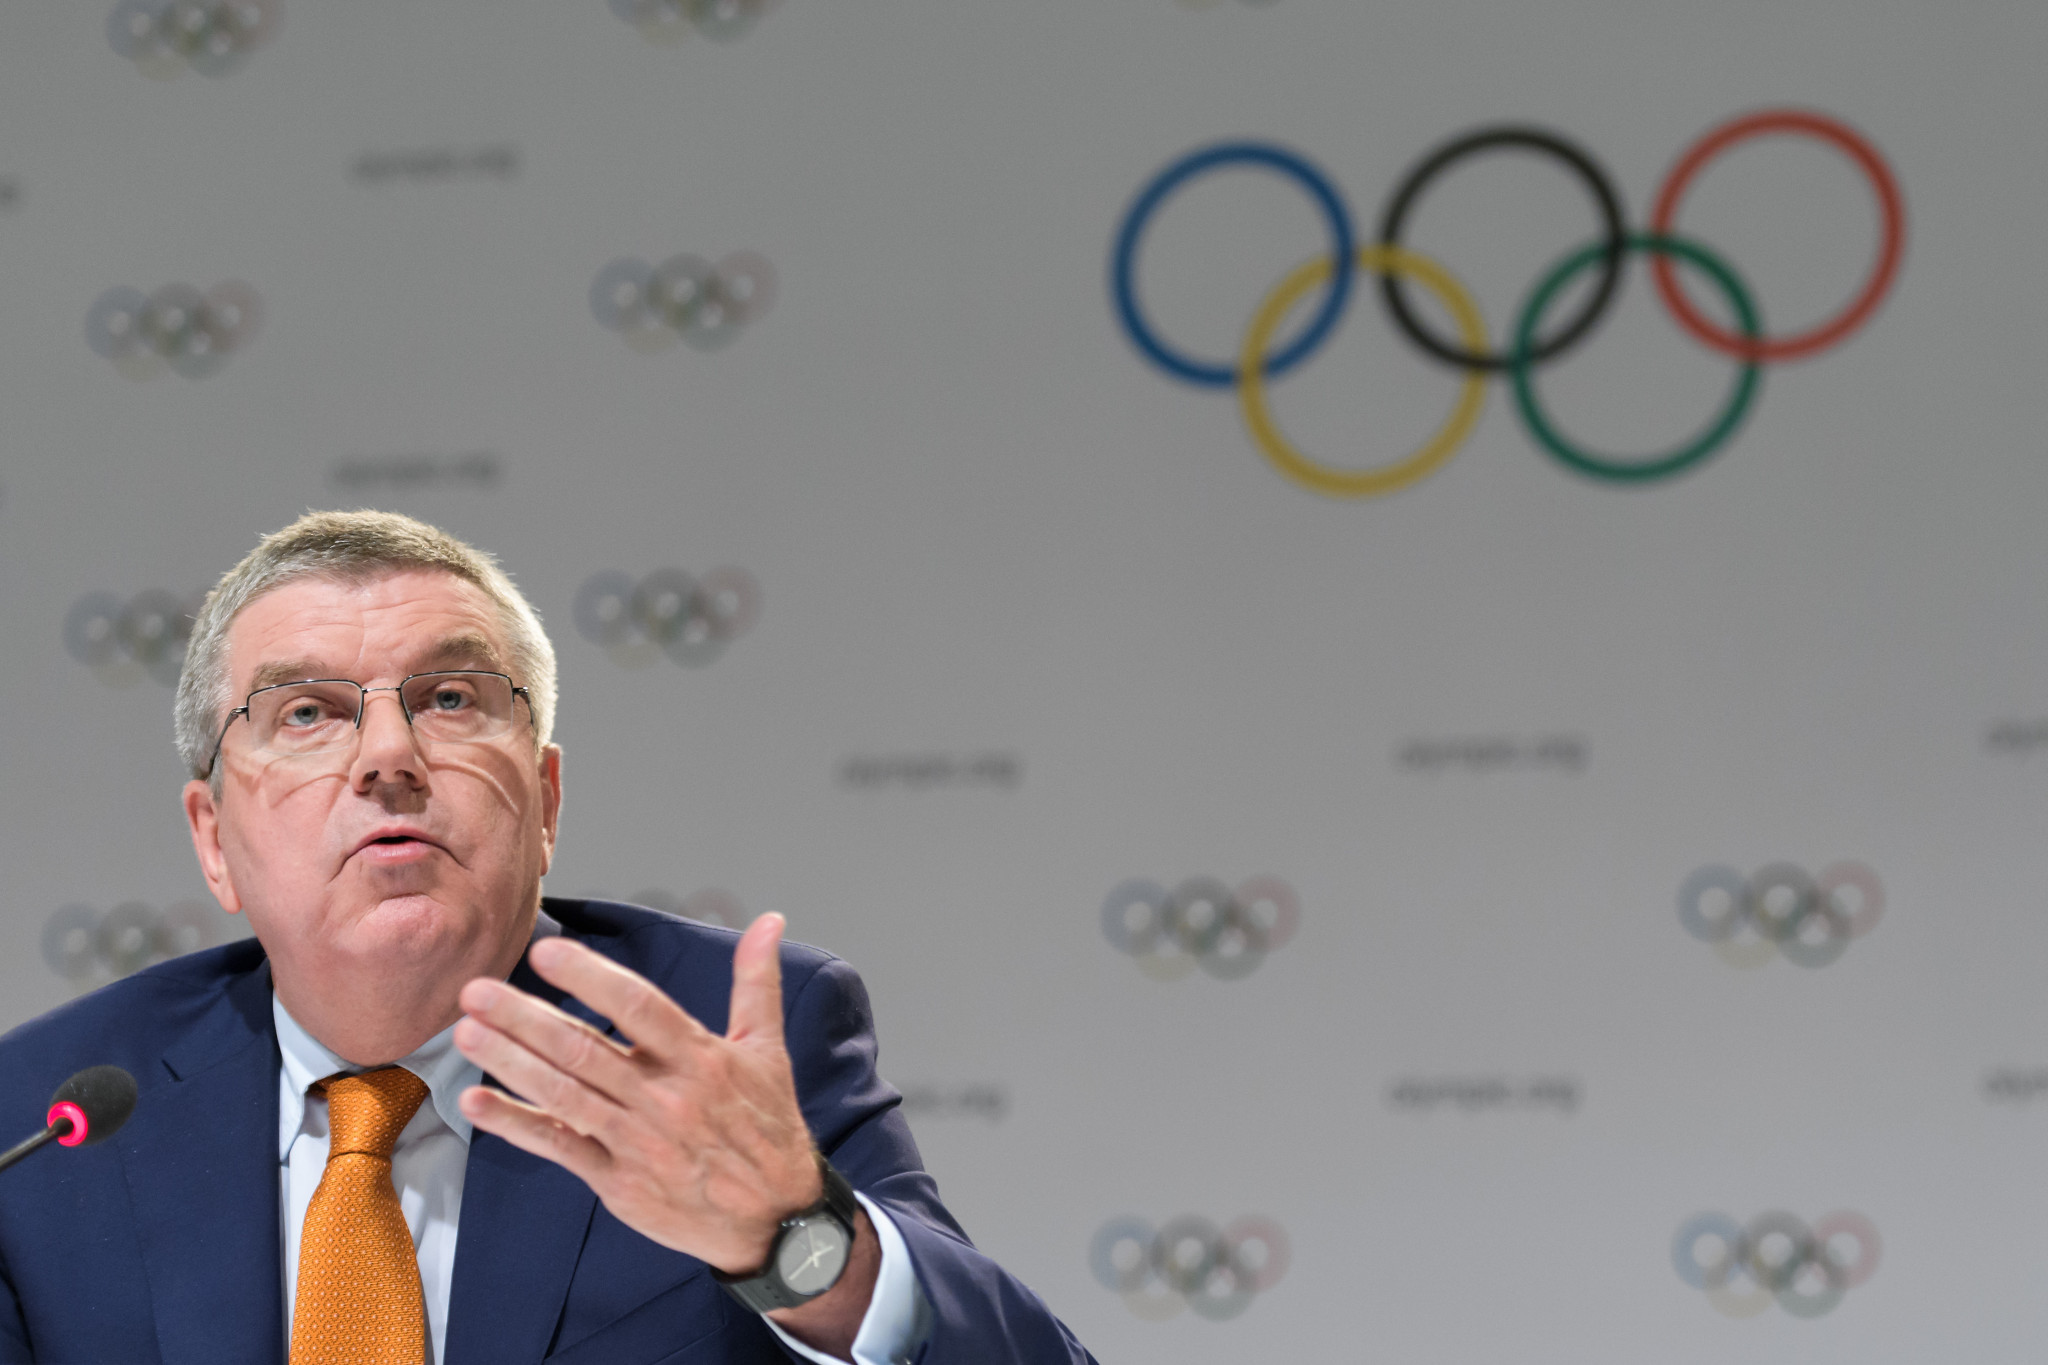 IOC Officially Awards 2024 Olympics to Paris, 2028 Games to Los Angeles